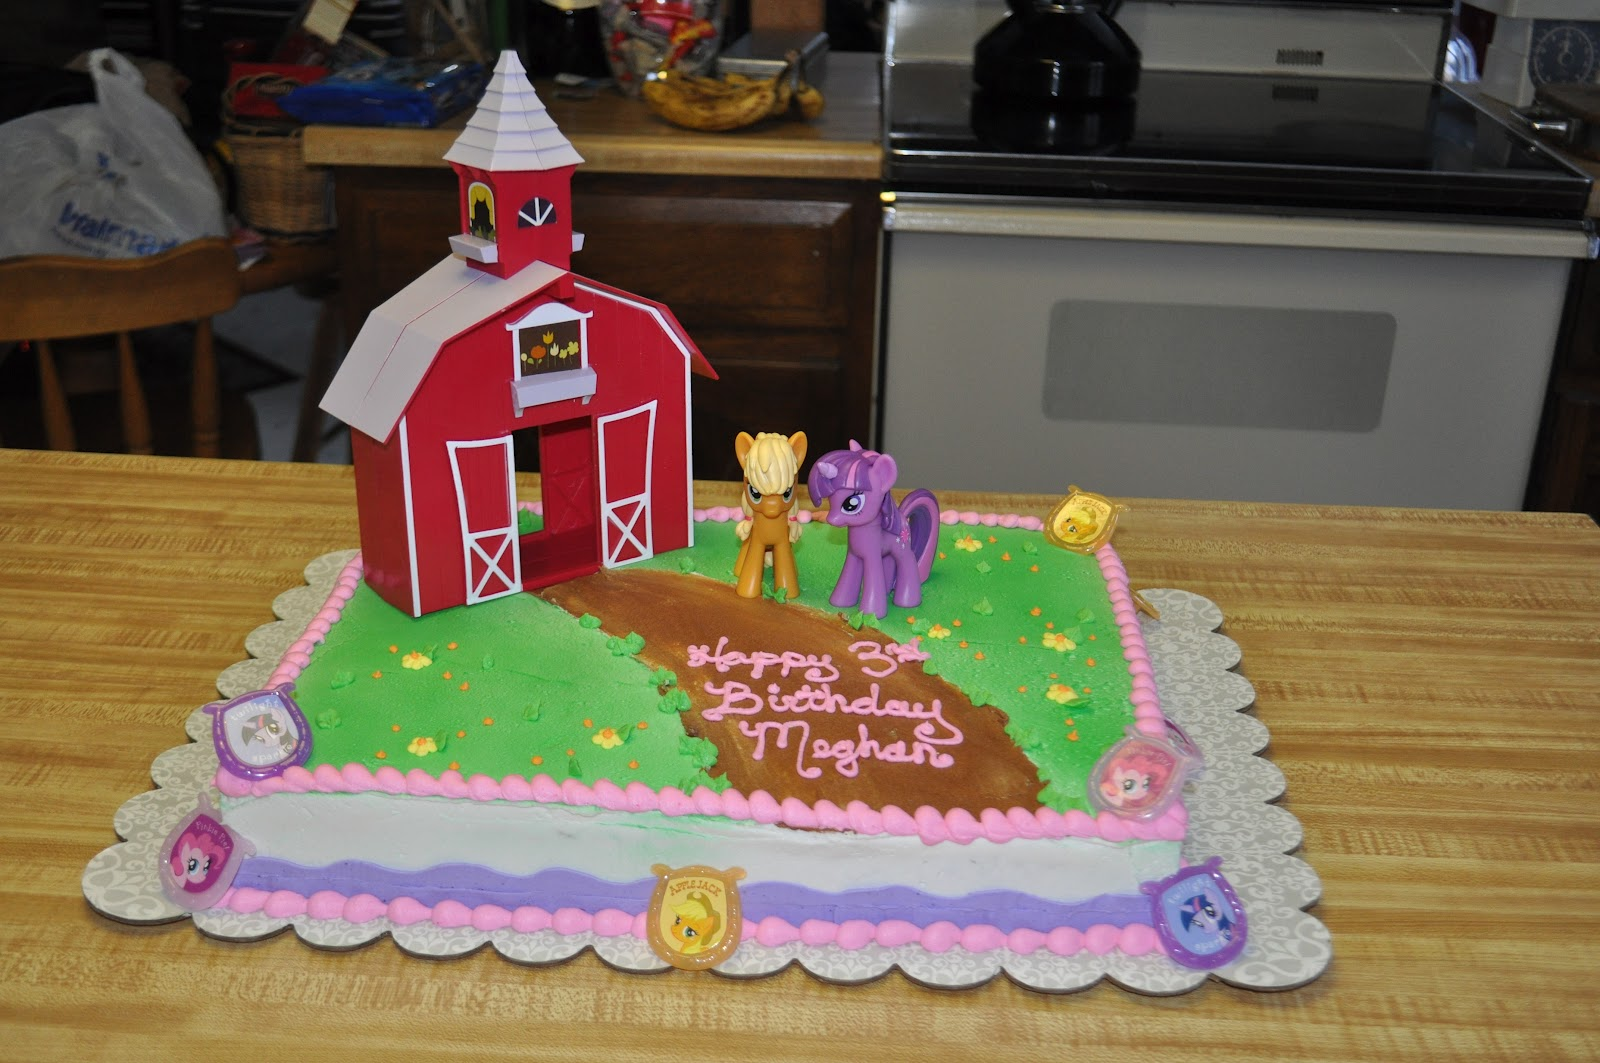 Prison City Cakes Using Bakery Kits on Cakes